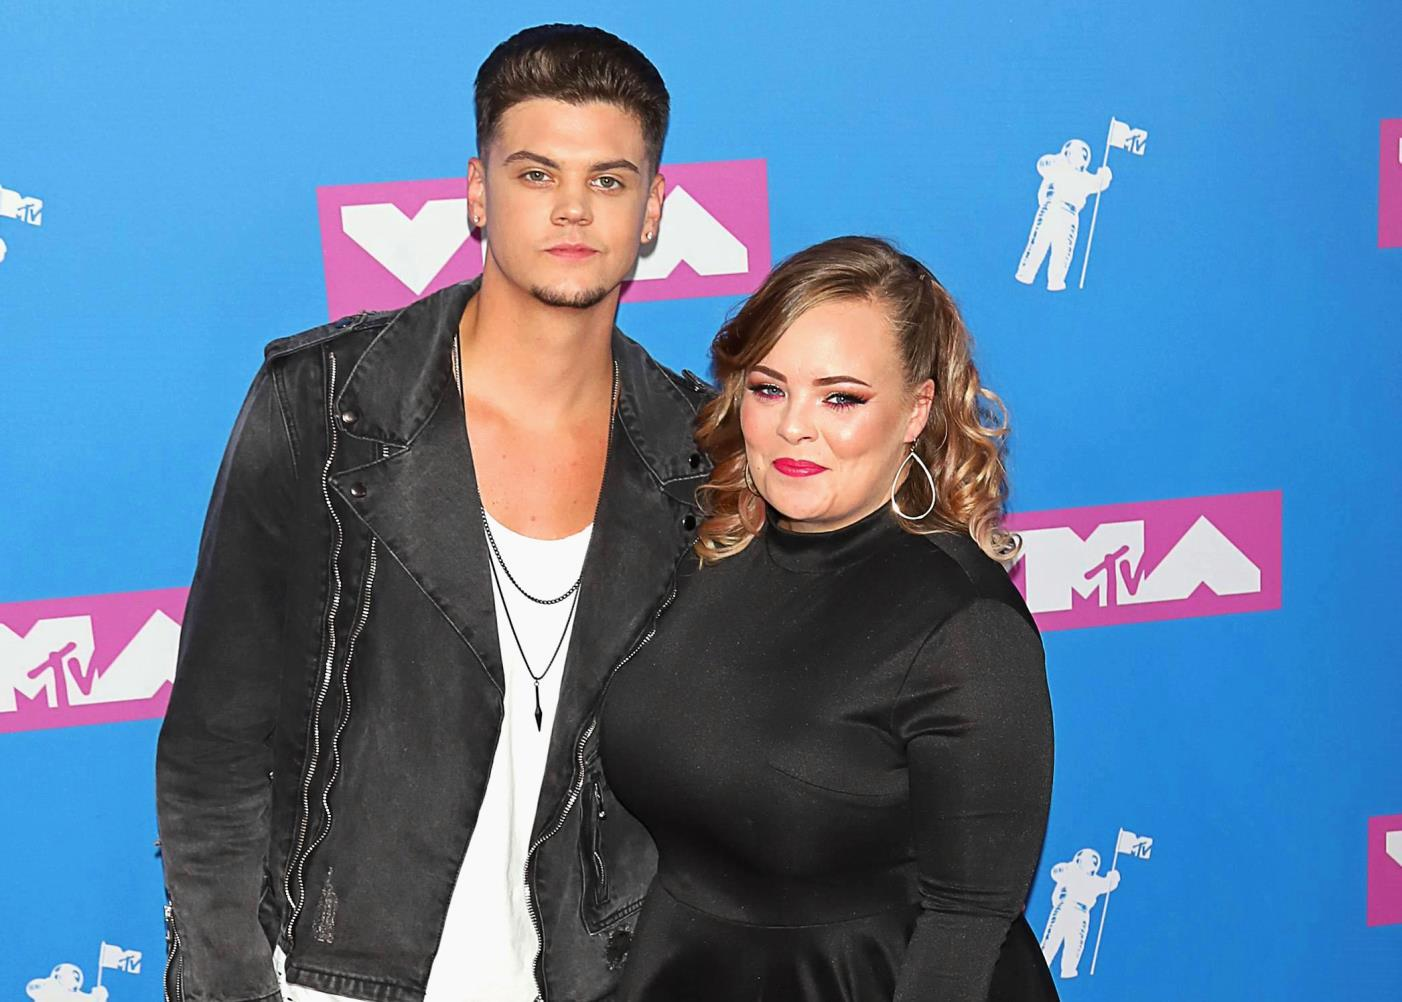 Tyler Baltierra Worried Wife Catelynn Lowell Would Go Into Early Labor - Keeping An Eye On Her Non-Stop!